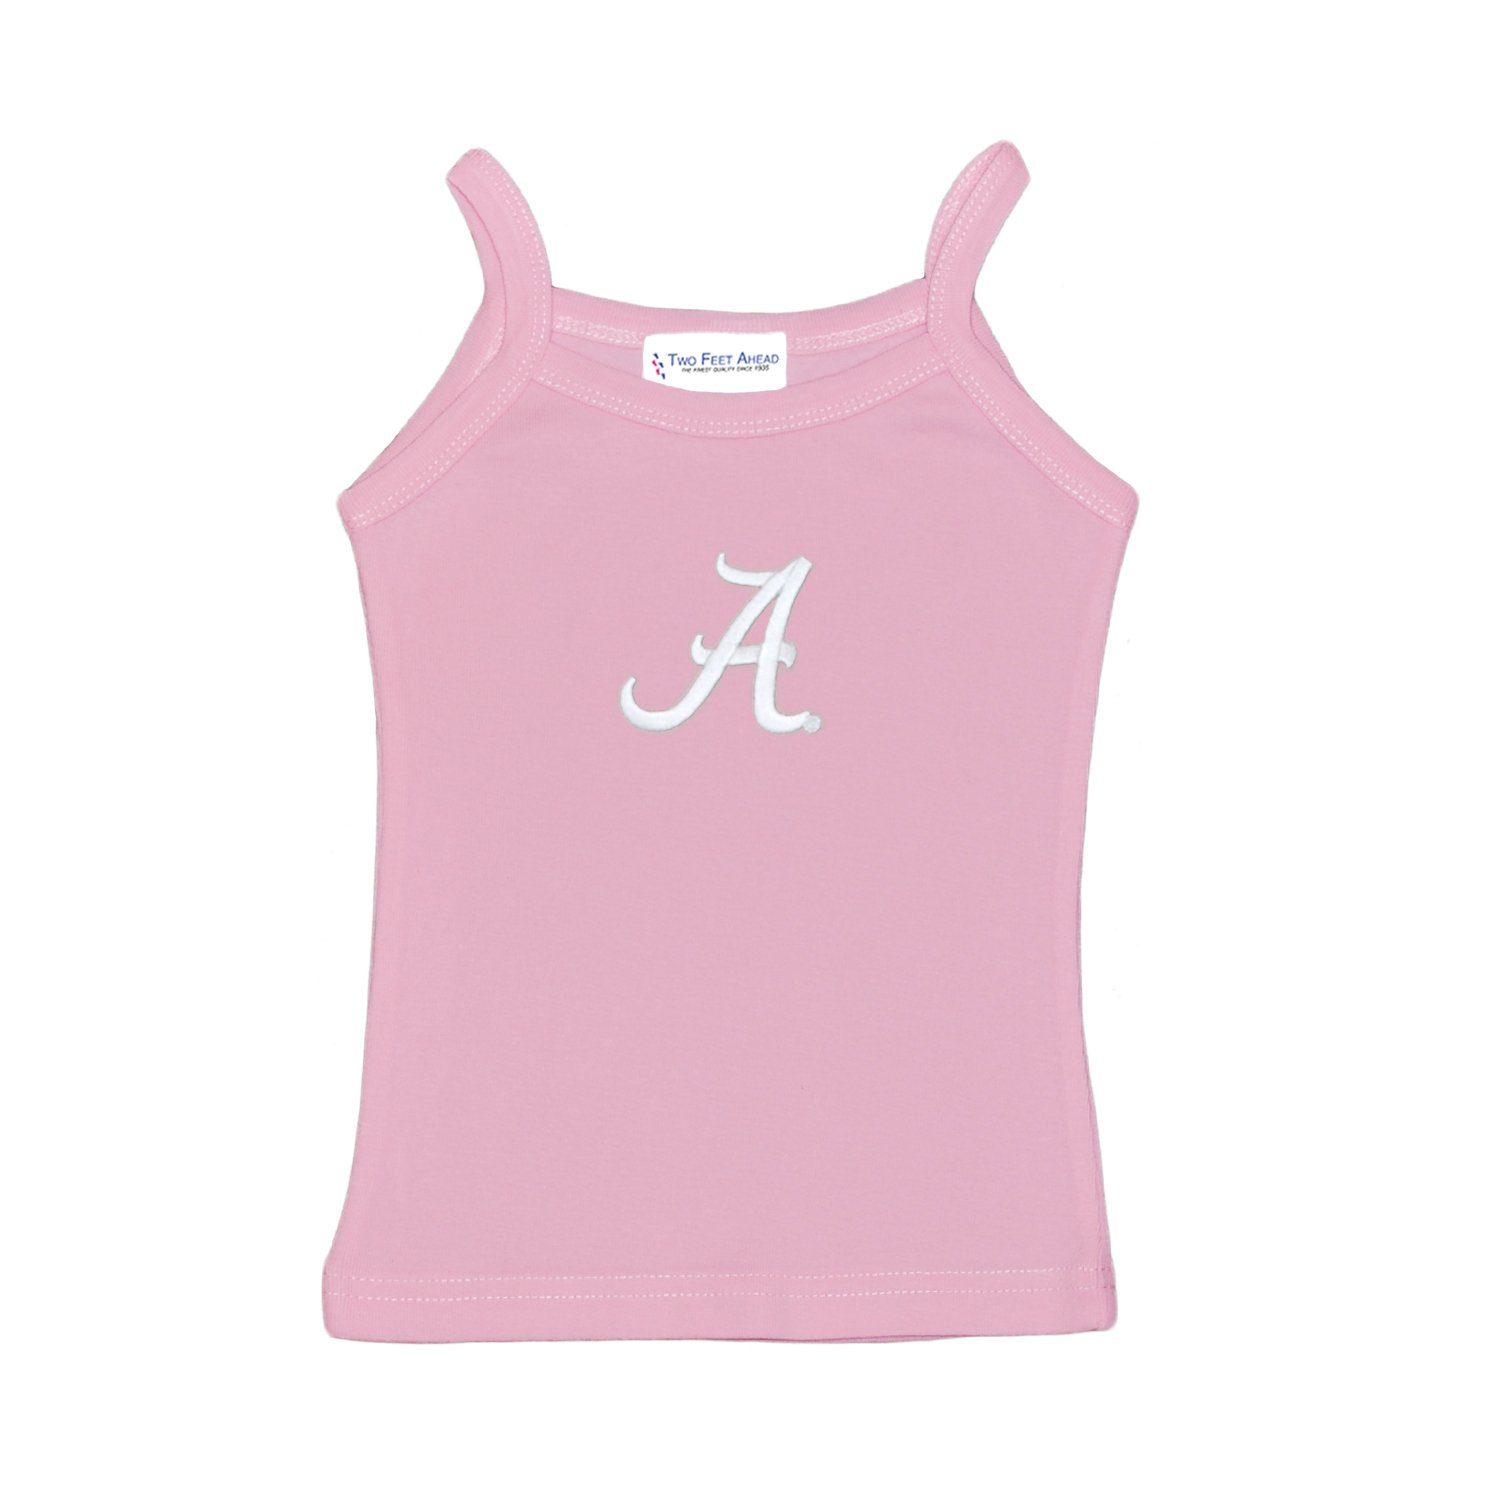 Size Large 8 Susans Closet Alabama Crimson Tide Girls Spaghetti Top - Light Pink